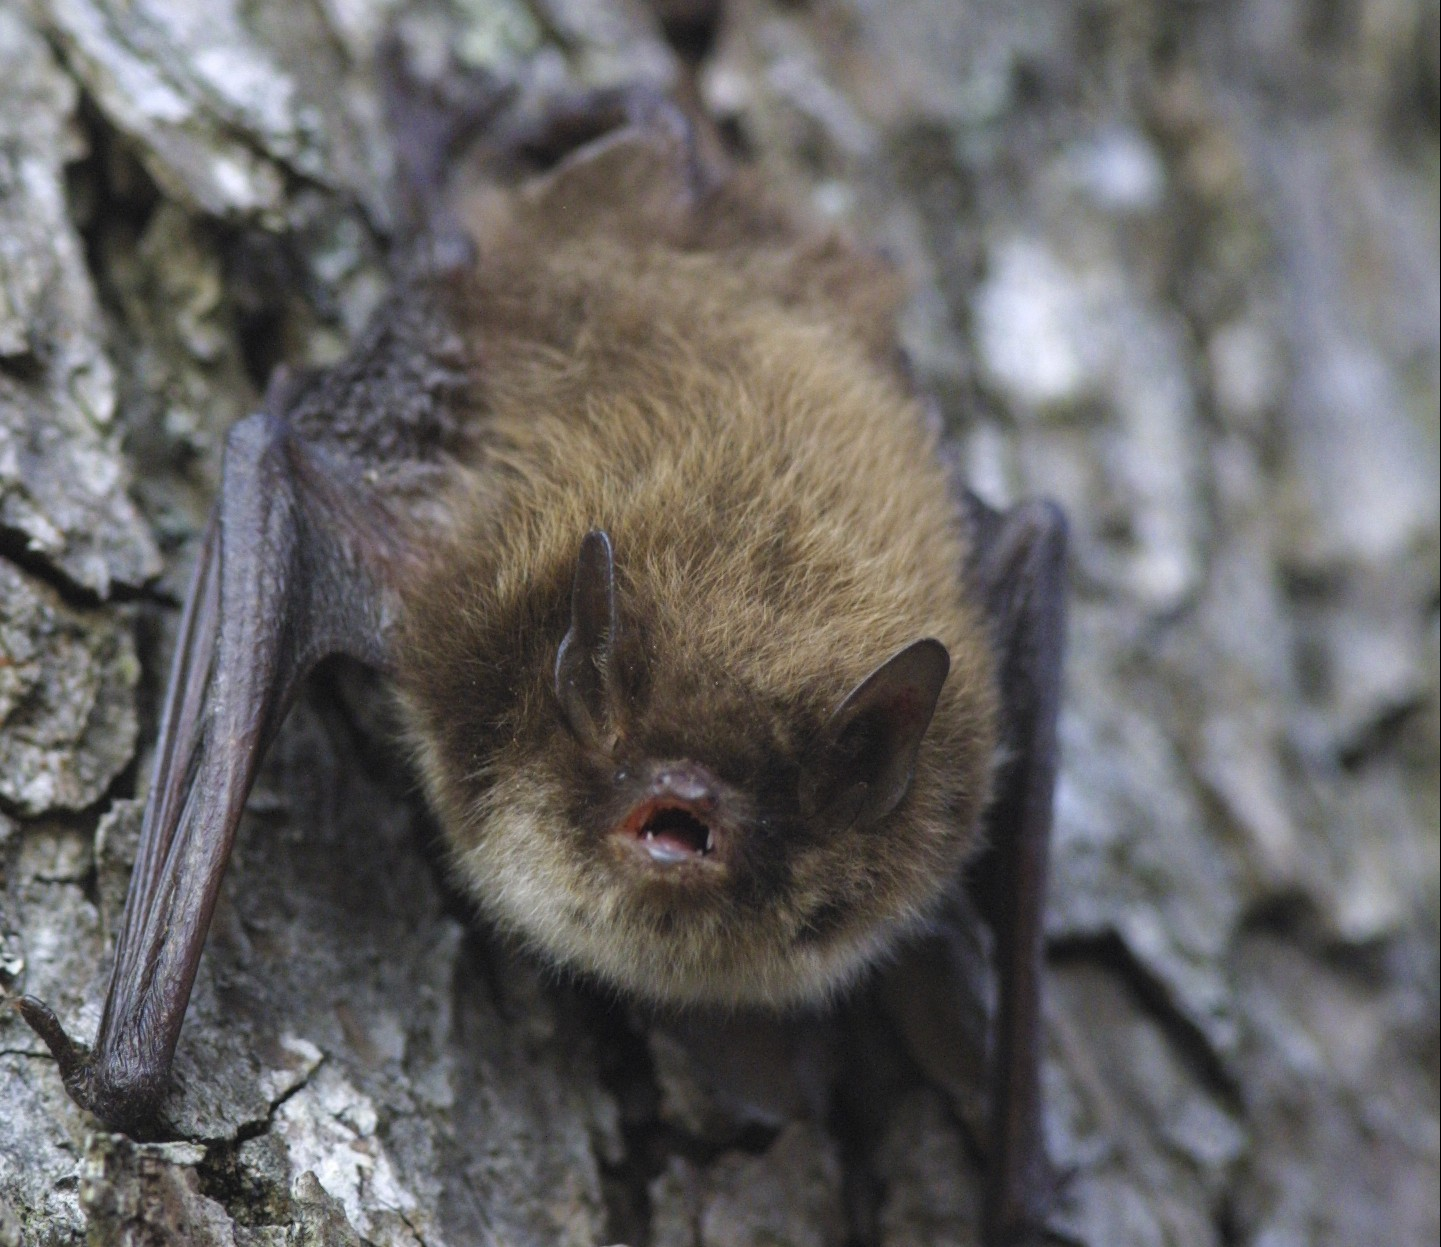 Bats-play-an-important-part-in-Britain's-ecology-and-need-to-be-considered-when-working-with-trees.